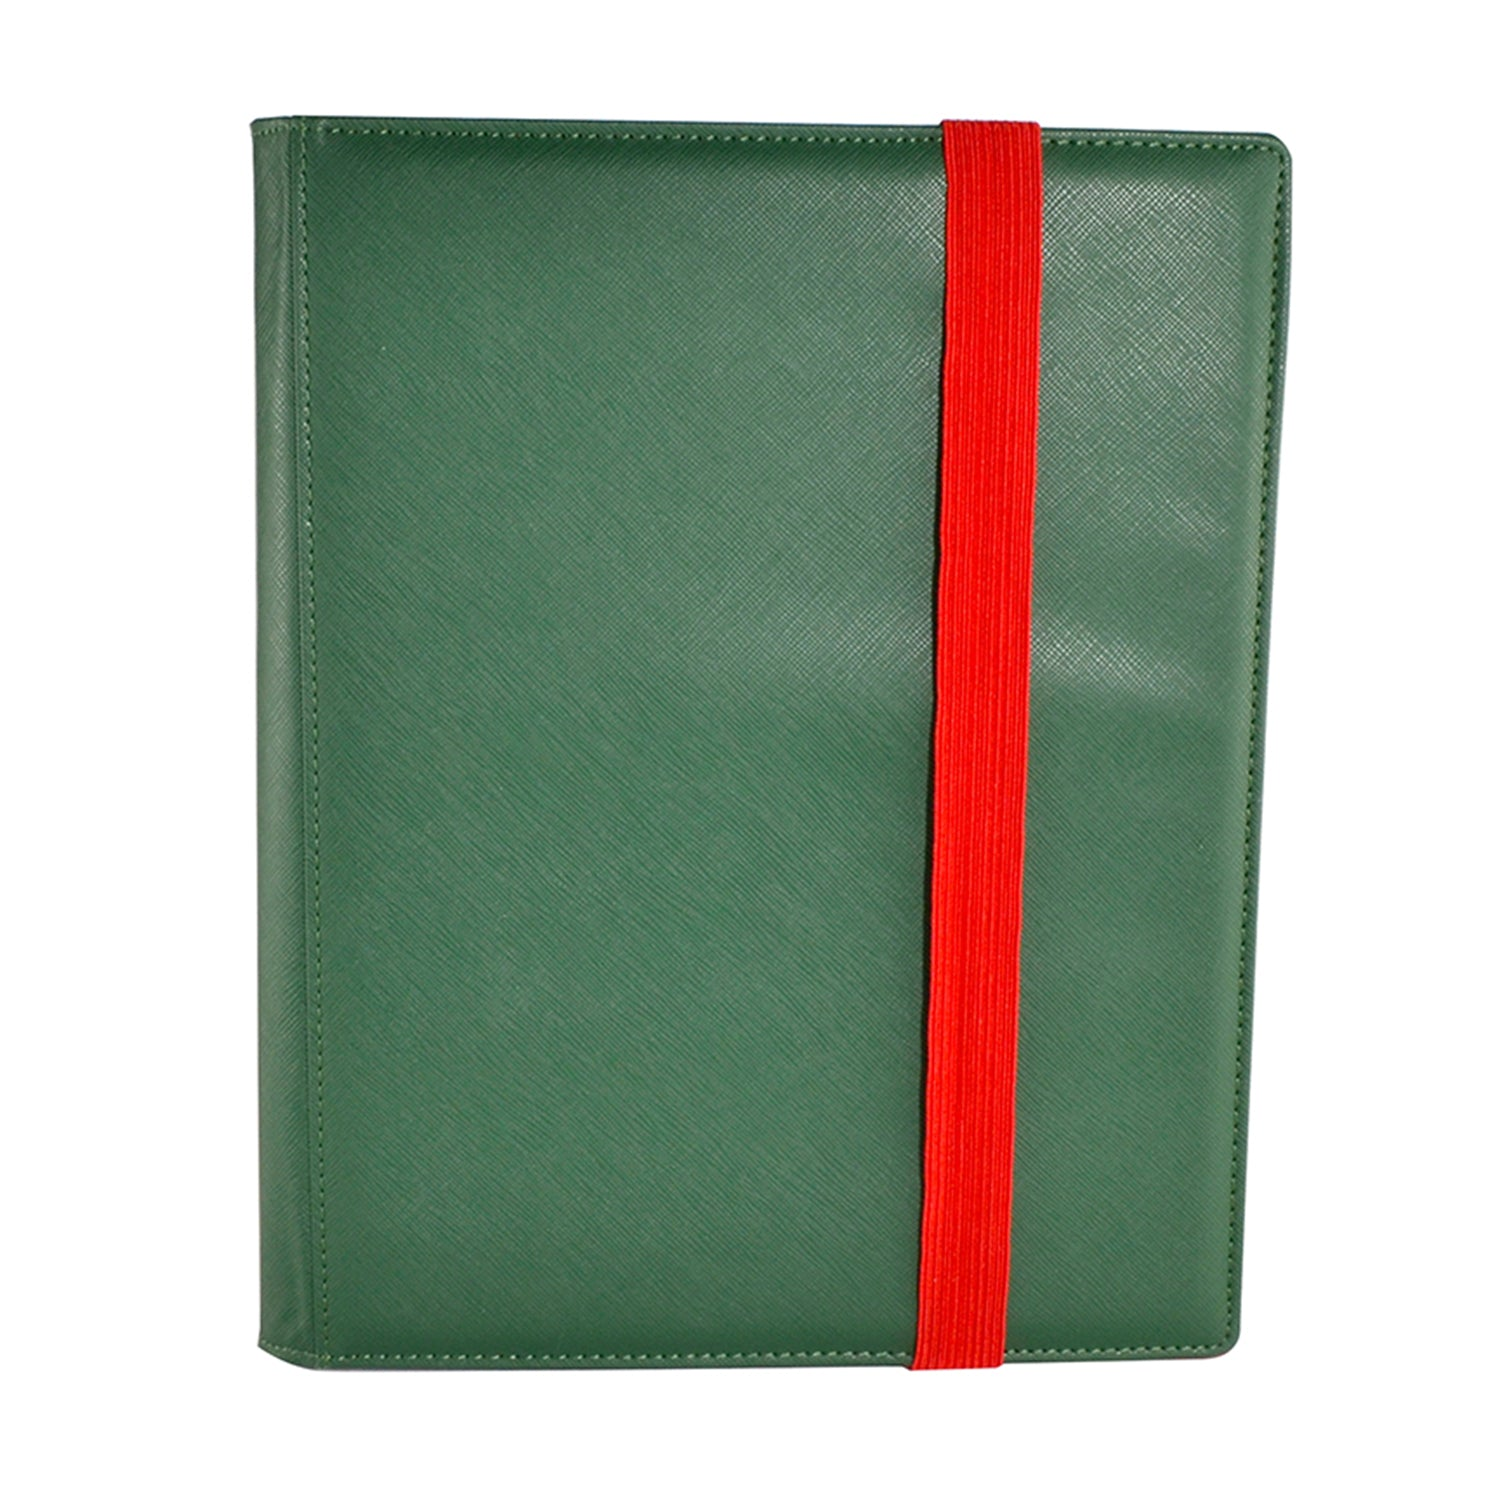 Dex Protection: The Dex Binder 9 - Green